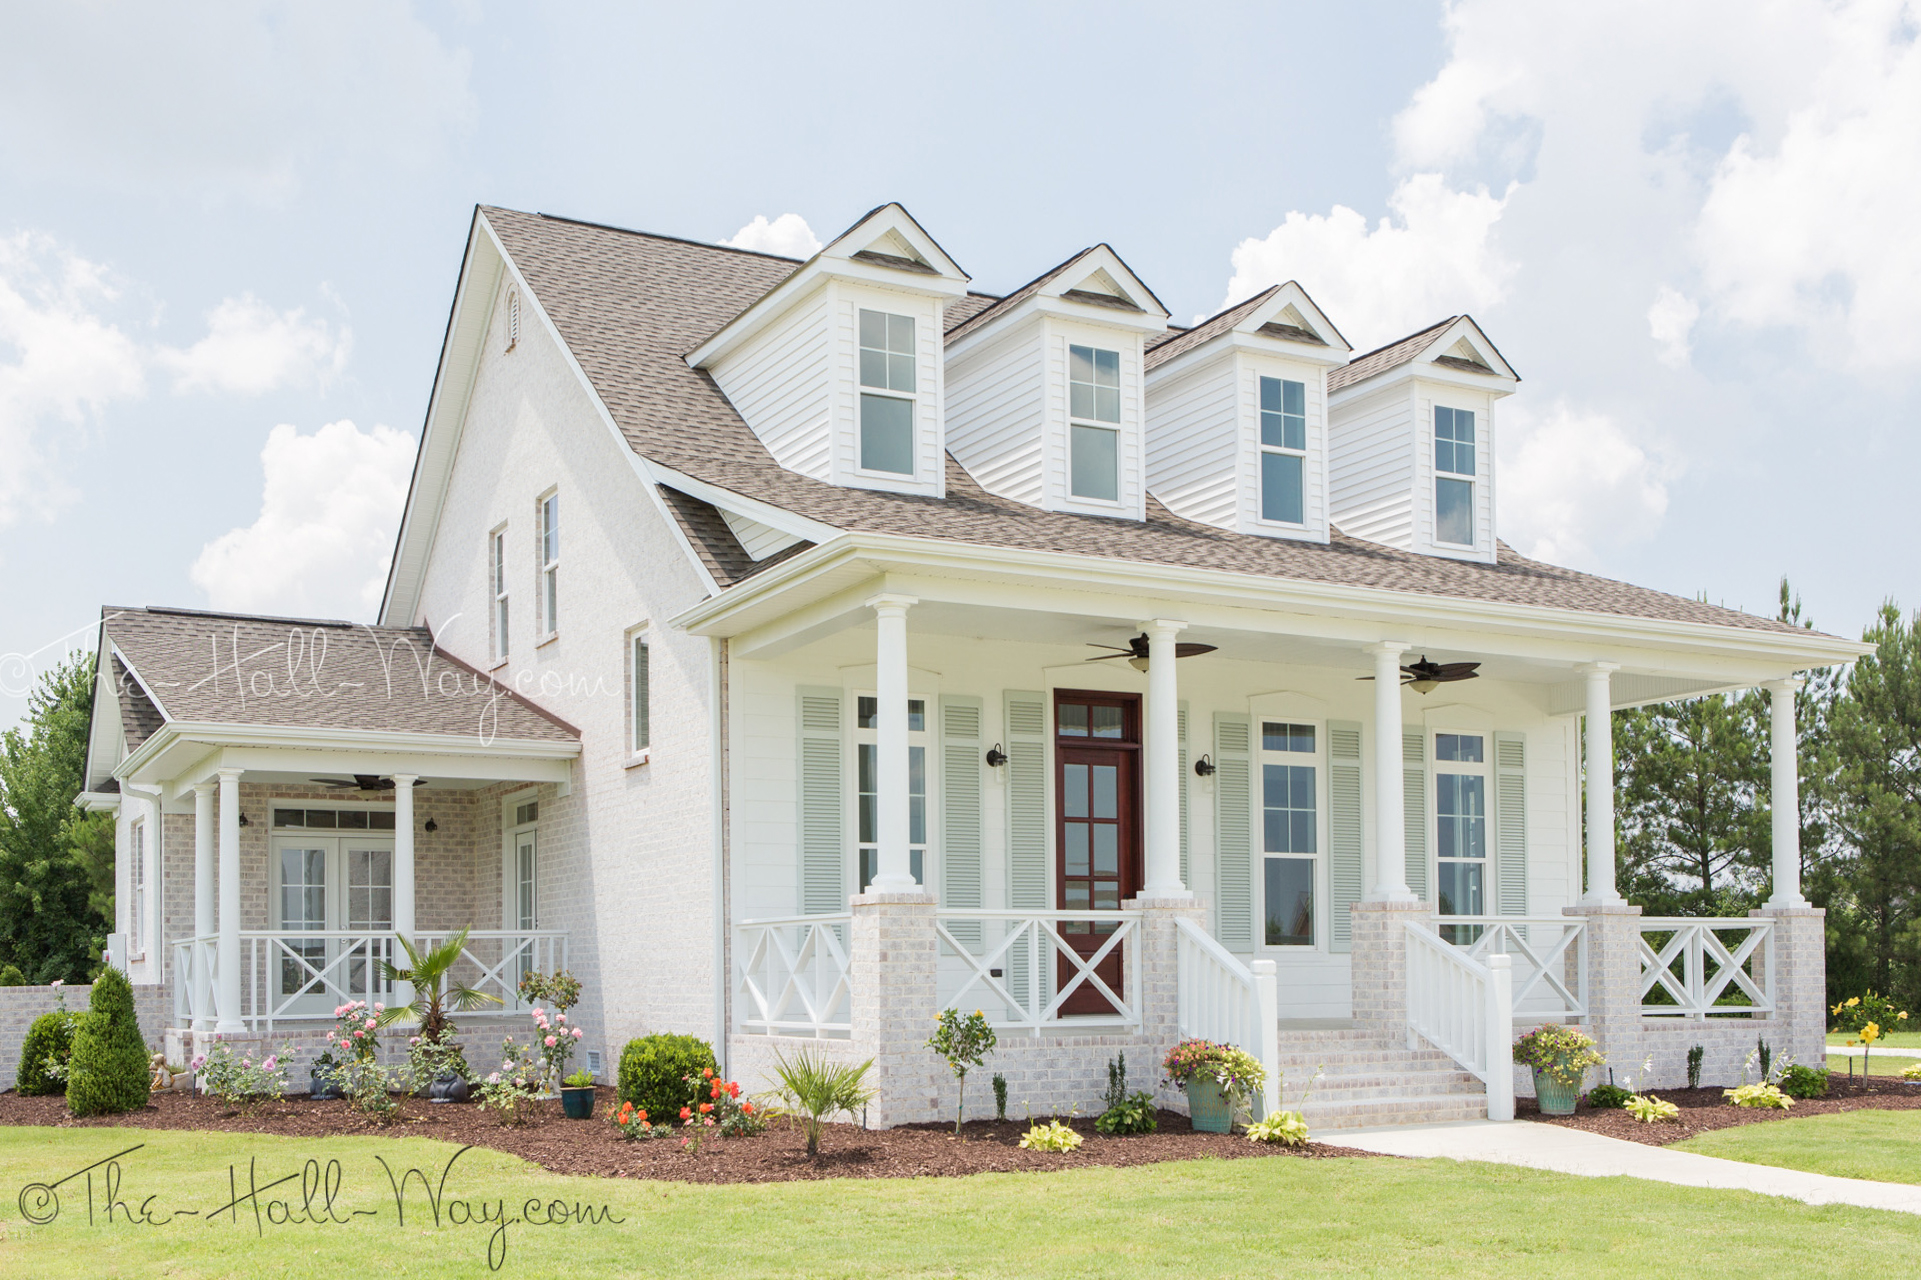 Southern living house plans with pictures homesfeed for Southern house plans with photos